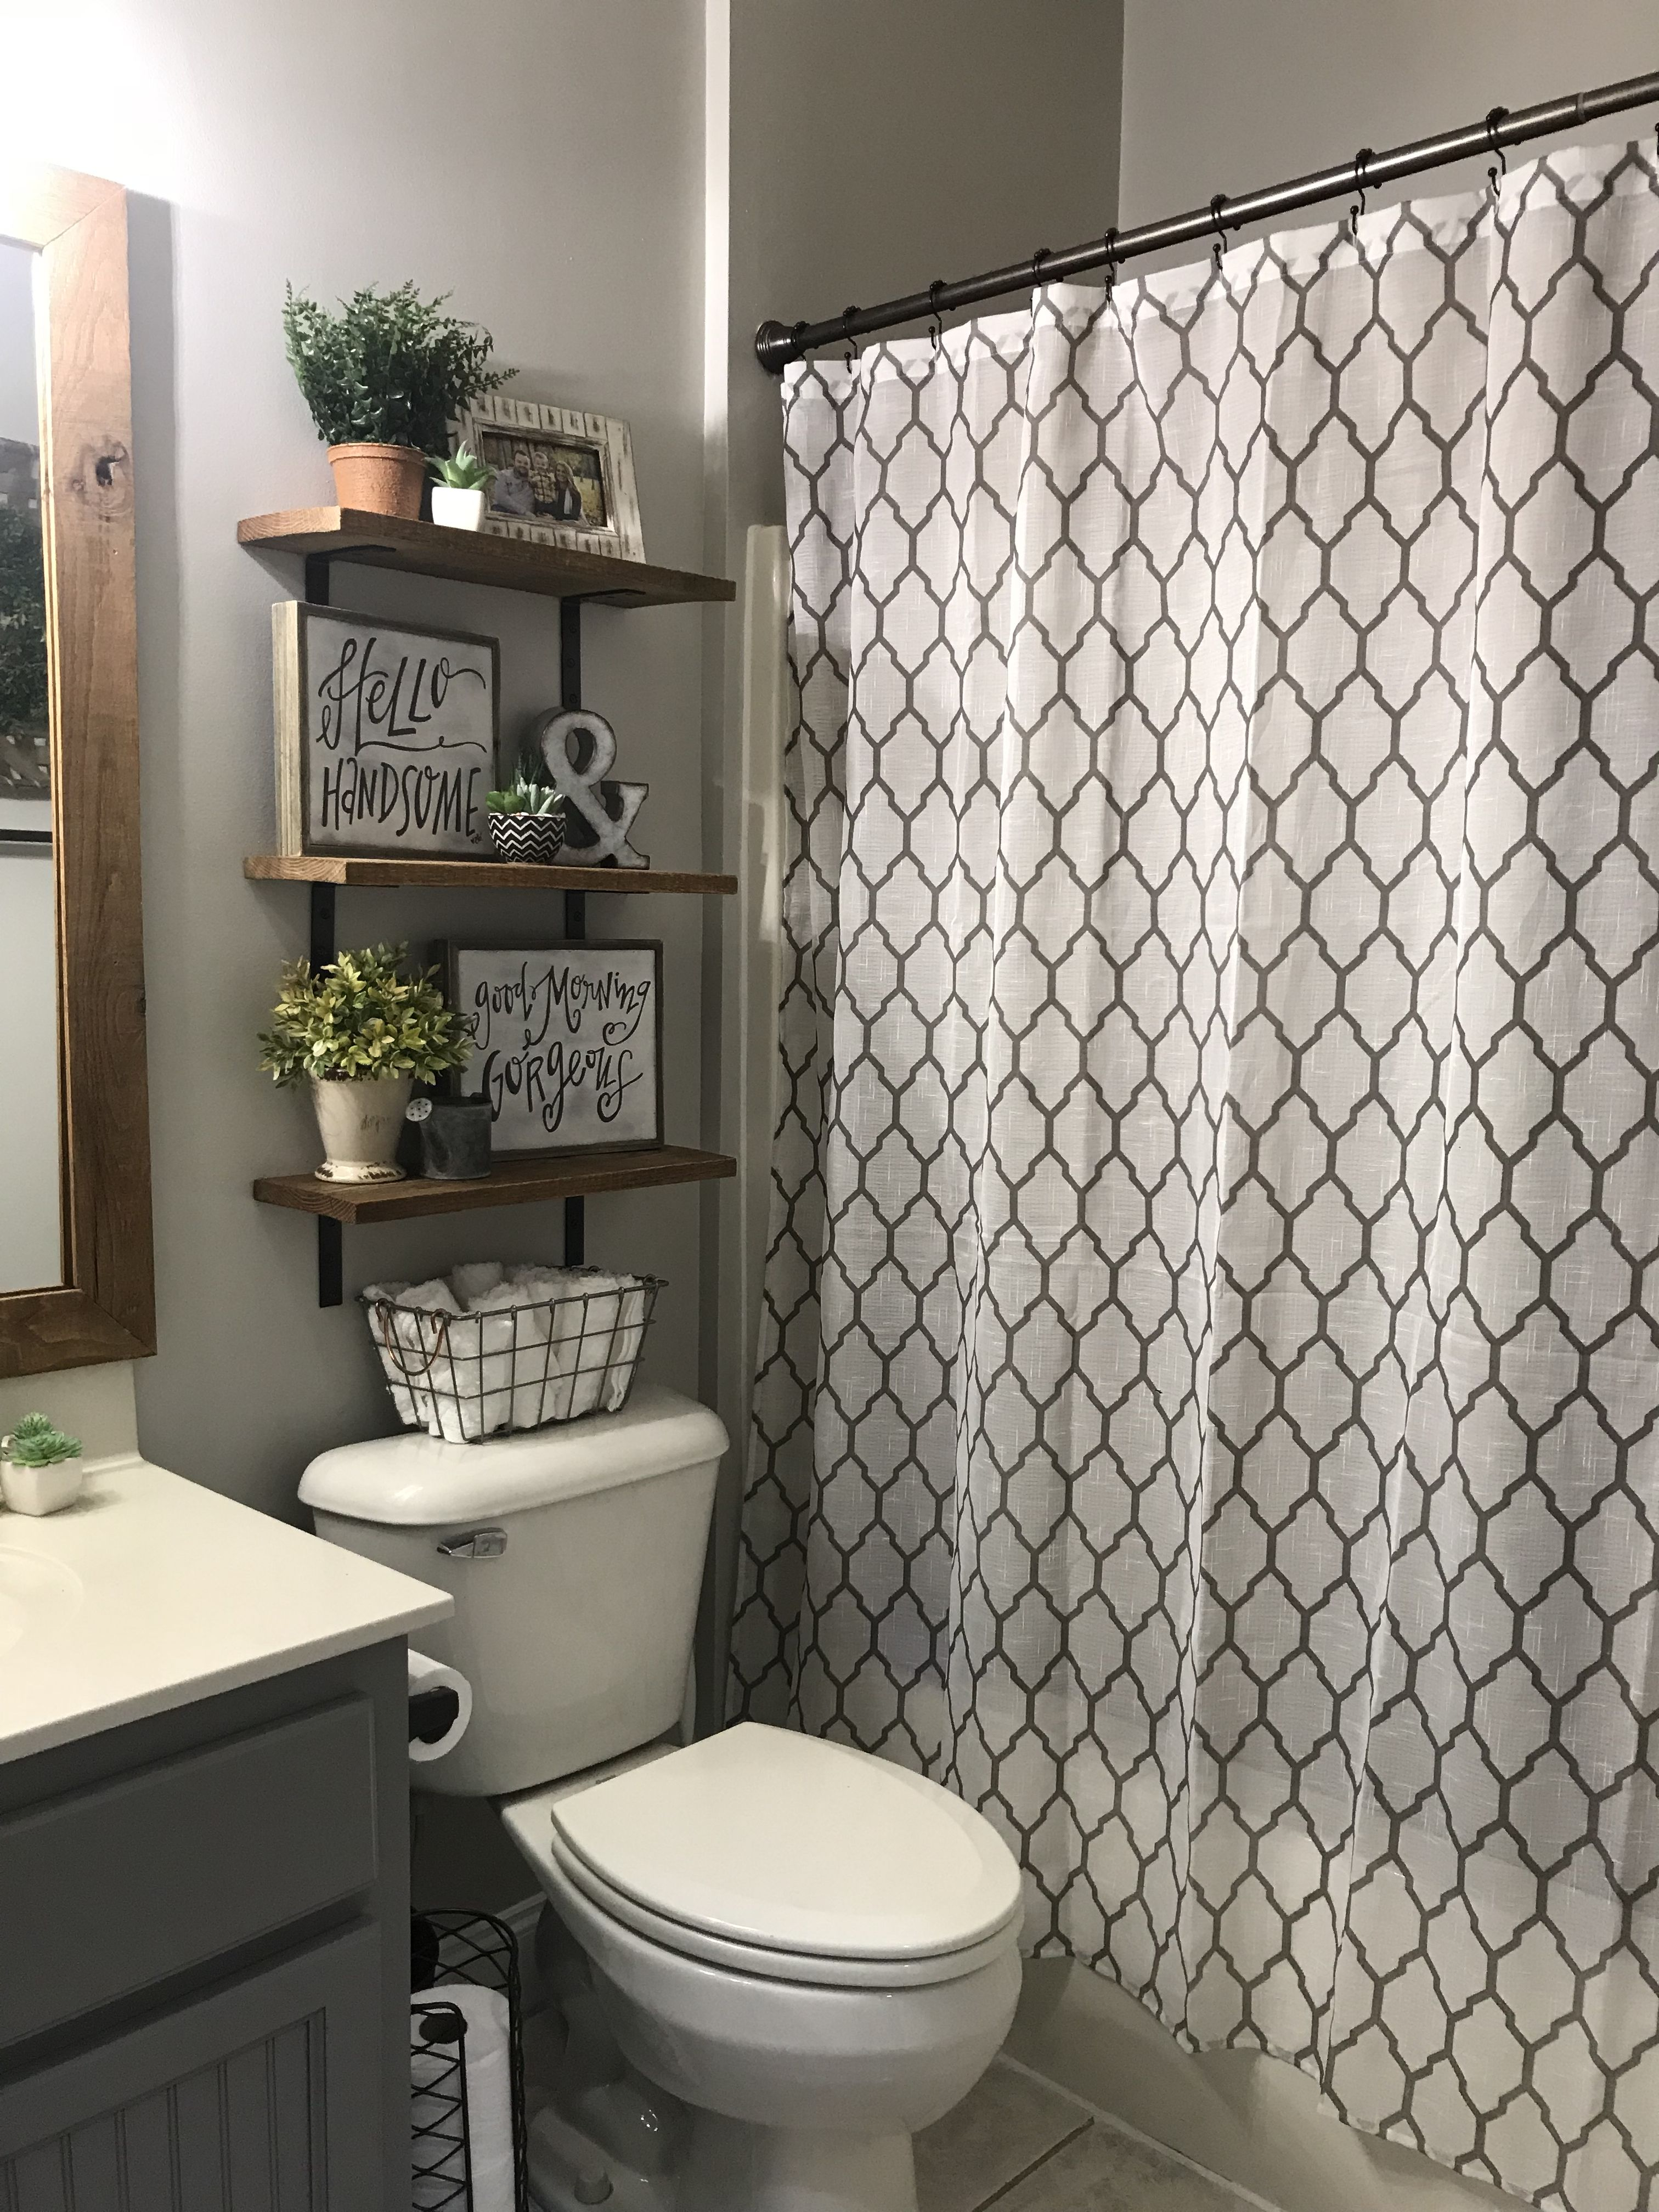 pin by chelsey phillips on home decor in 2019 gray bathroom decor rh pinterest com